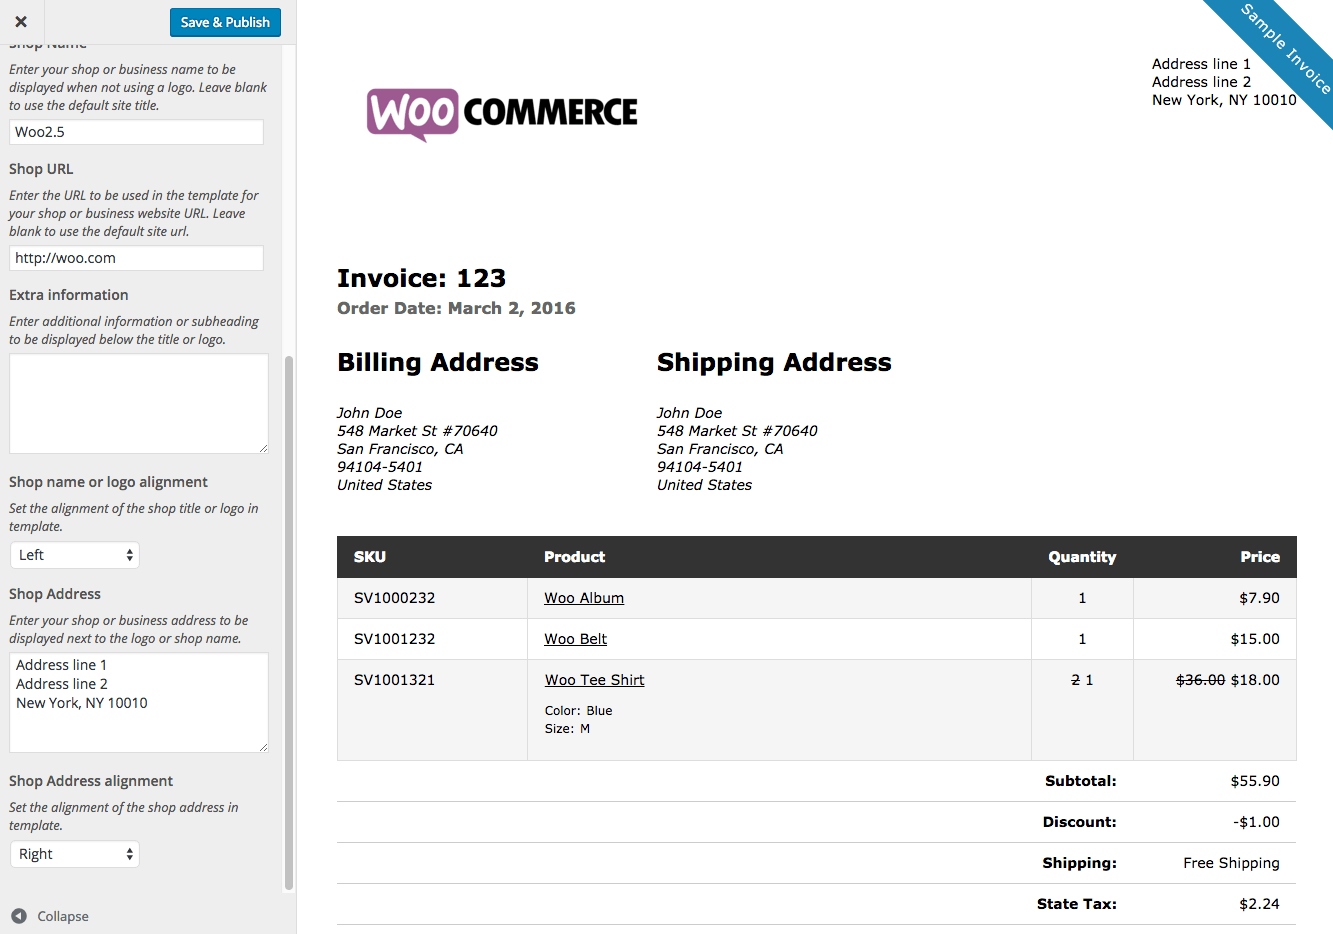 Breakupus  Personable Woocommerce Print Invoices Amp Packing Lists  Woocommerce Docs With Goodlooking Woocommerce Print Invoices  Packing Lists Customizer With Charming Photography Invoice Template Free Also Requirements For A Tax Invoice In Addition Australian Tax Invoice And Commercial Invoice Template Dhl As Well As Codeigniter Invoice Additionally Download Free Invoice Template For Word From Docswoocommercecom With Breakupus  Goodlooking Woocommerce Print Invoices Amp Packing Lists  Woocommerce Docs With Charming Woocommerce Print Invoices  Packing Lists Customizer And Personable Photography Invoice Template Free Also Requirements For A Tax Invoice In Addition Australian Tax Invoice From Docswoocommercecom